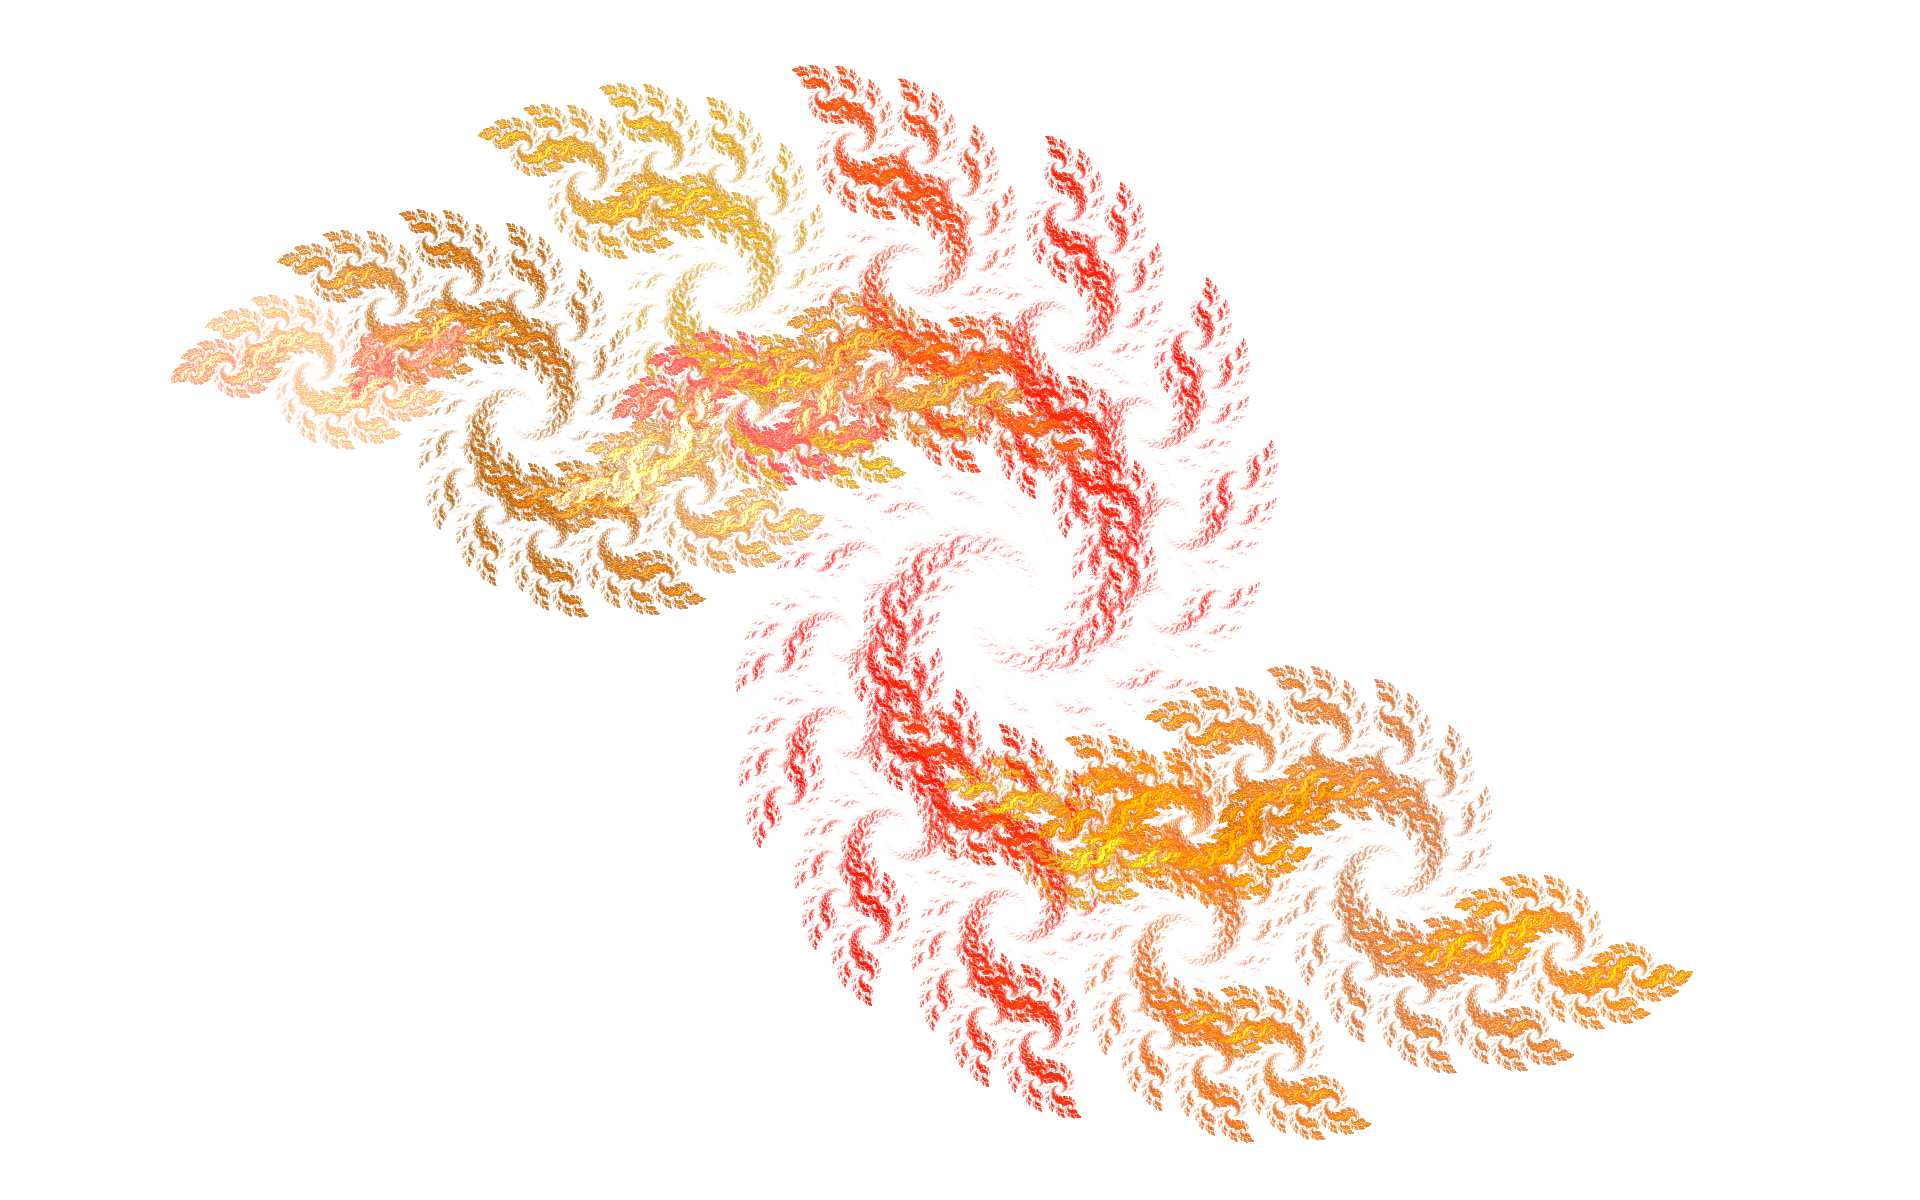 flame Spiral effect PNG Image